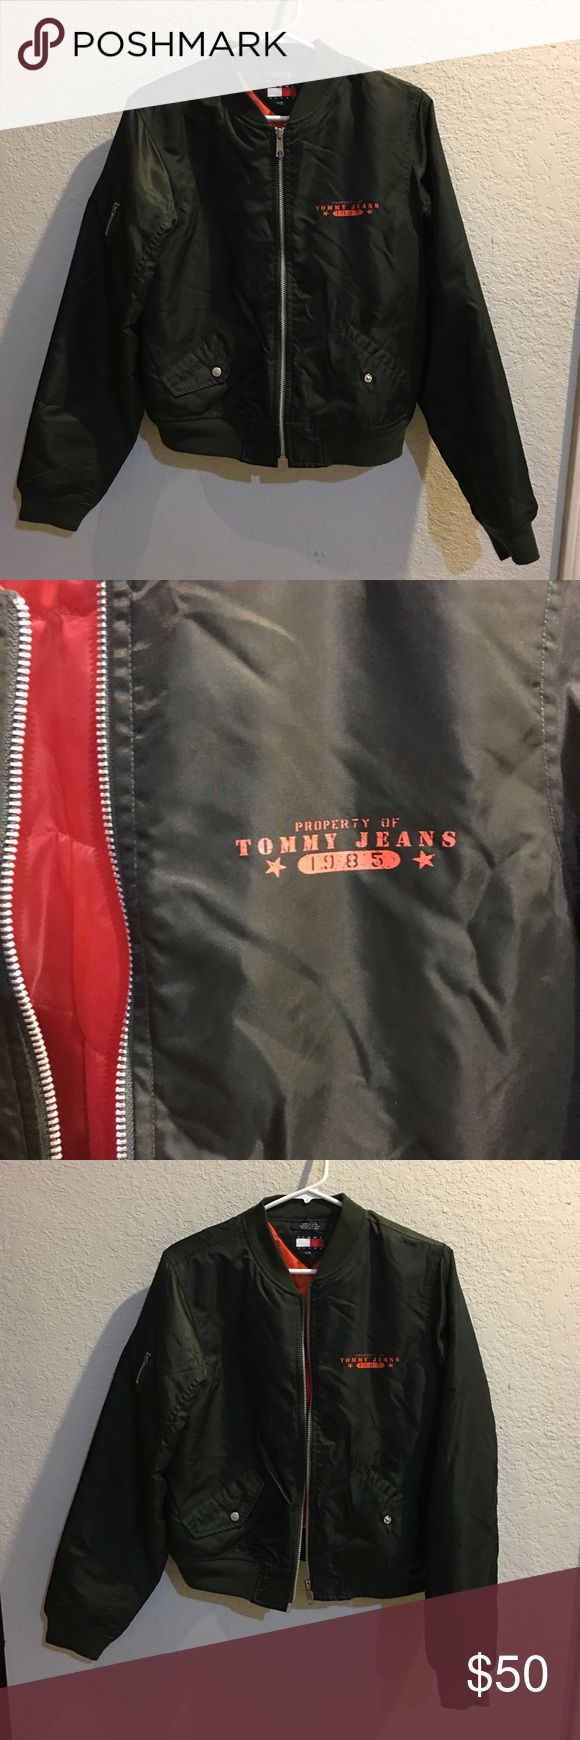 Tommy Hilfiger Army green bomber jacket - Size L Tommy Hilfiger Army Green Bomber Jacket with Orange inner lining! Size - L Jacket is like new, gently worn and cared for! No tears, marks or scuffs! Smoke free and pet free home! Tommy Hilfiger Jackets & Coats Utility Jackets